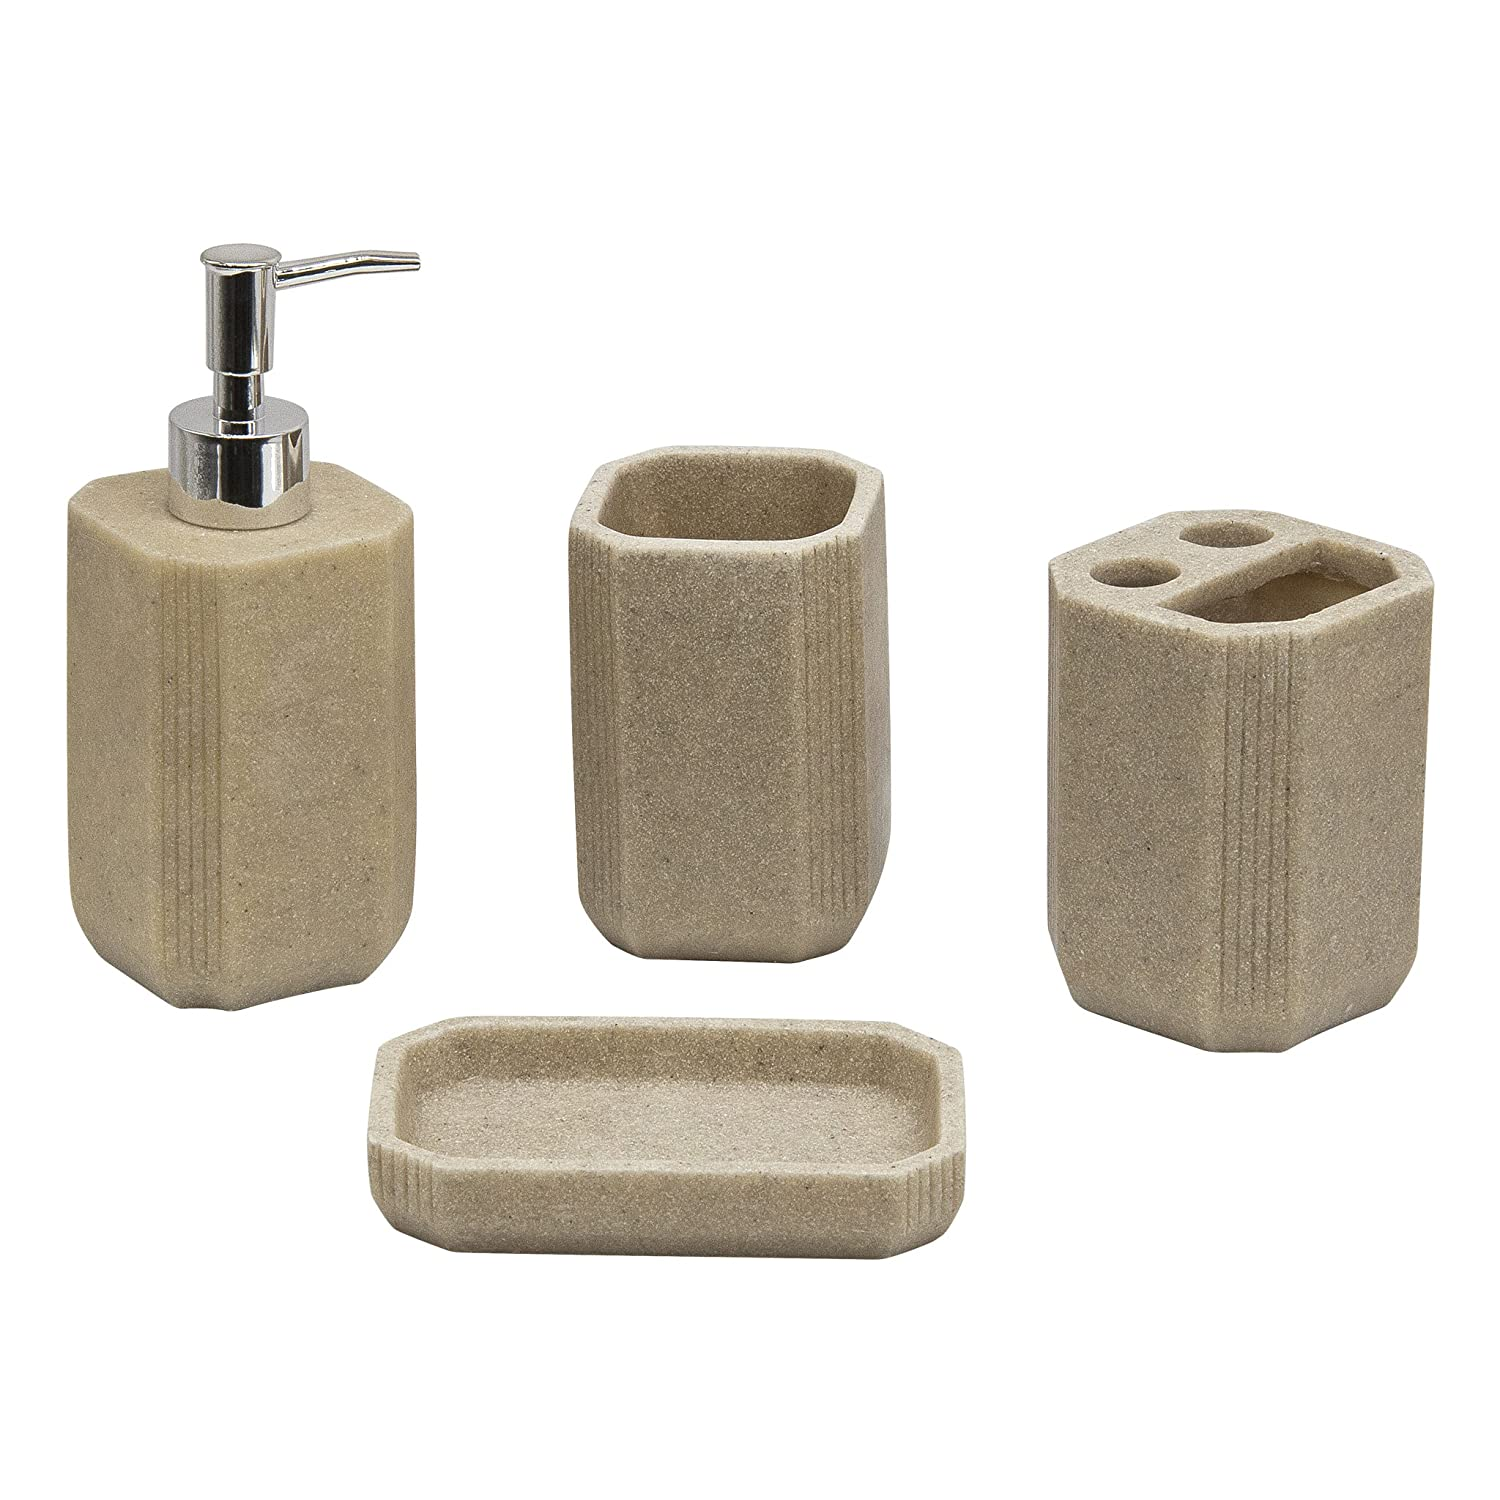 4pc Bathroom Accessories Set - Toothbrush Holder, Soap Dish, Soap/Lotion Dispenser, Tumbler, Cream SQ Professional Others